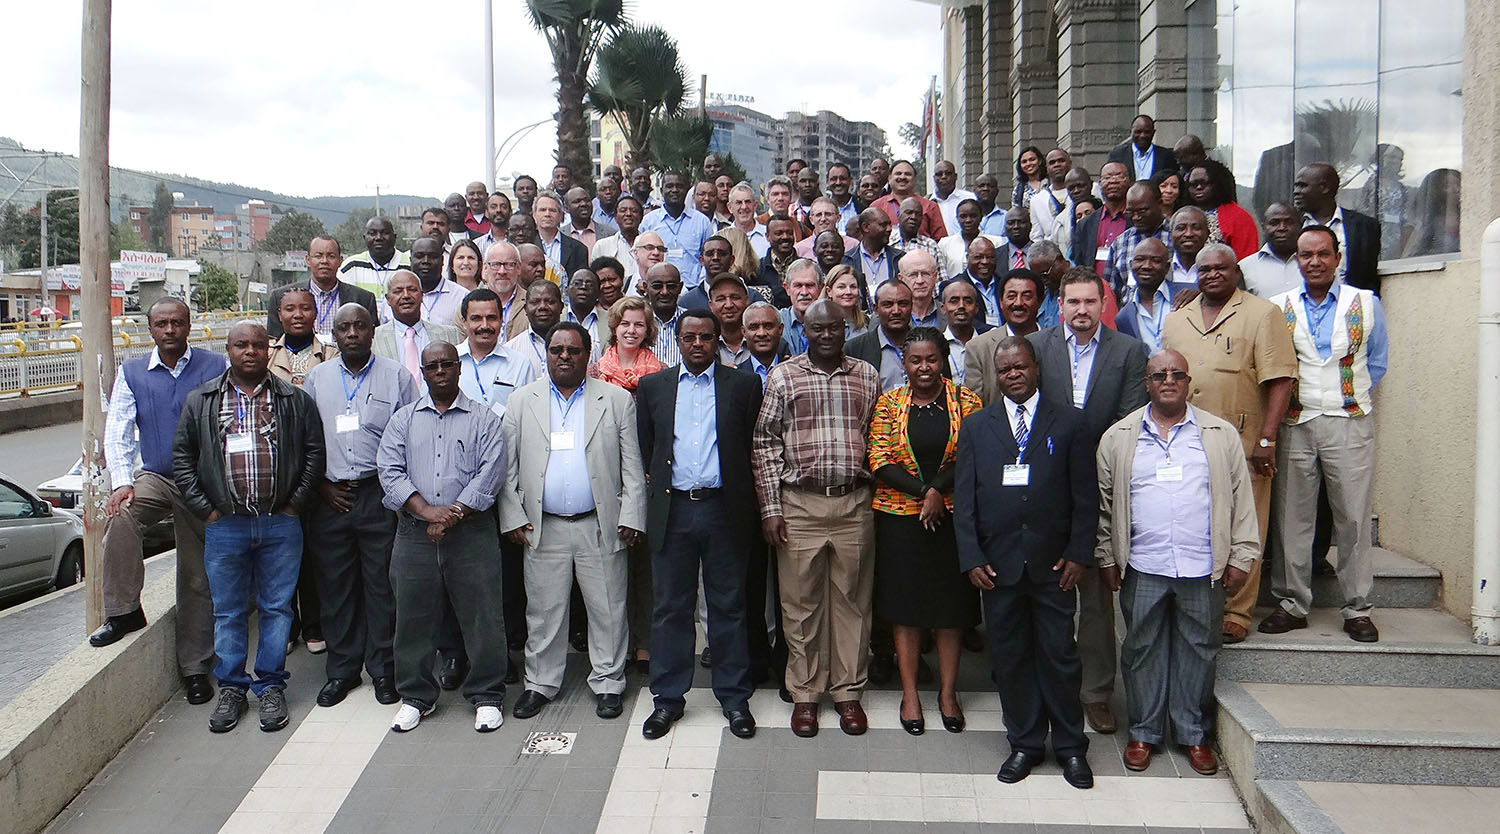 Participants in the joint DTMA and IMAS meeting held in Addis Ababa, Ethiopia. Photo: CIMMYT